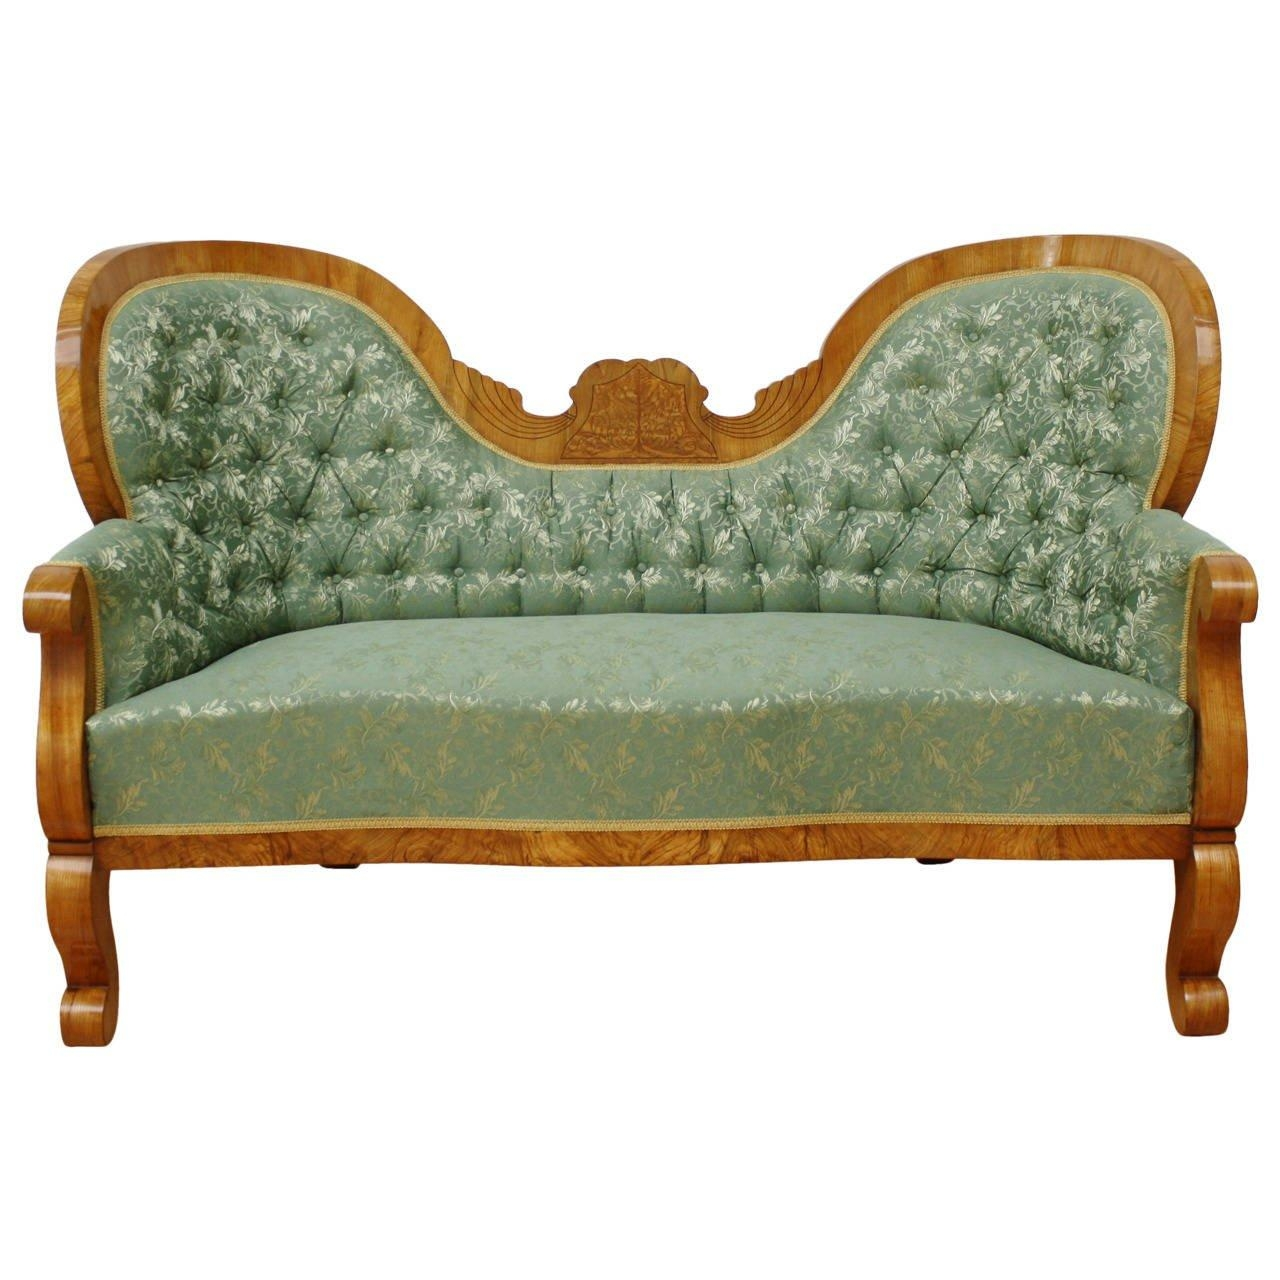 19Th Century Austrian Biedermeier Sofa For Sale At 1Stdibs With Regard To Biedermeier Sofas (View 1 of 20)